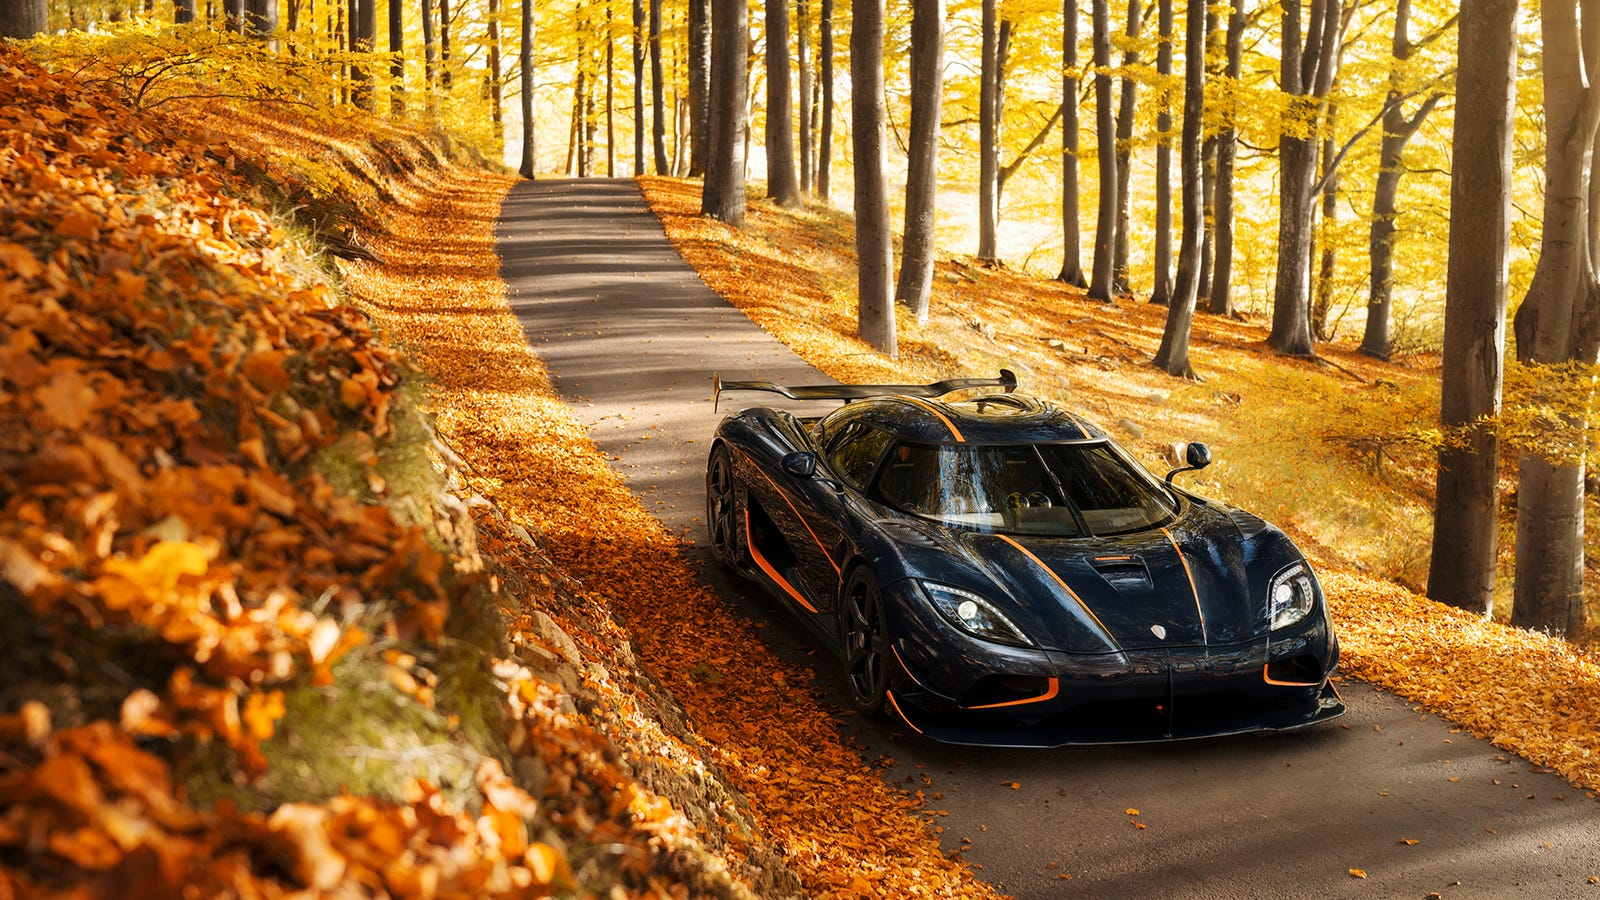 koenigsegg regera jalopnik with Follow The Story Of The First Koenigsegg Agera Rs That 1744411116 on The Koenigsegg One 1 Is Swedens 280 Mph Carbon Fiber H 1532088783 furthermore Koenigseggs Mad Genius Ceo Can Track Every Koenigsegg C 1793302038 as well Christian Von Koenigsegg Specs His 1 9 Million Superca 1793712626 also Showthread likewise The Koenigsegg Regera Is Still The Craziest Car Of 2015 1713112110.